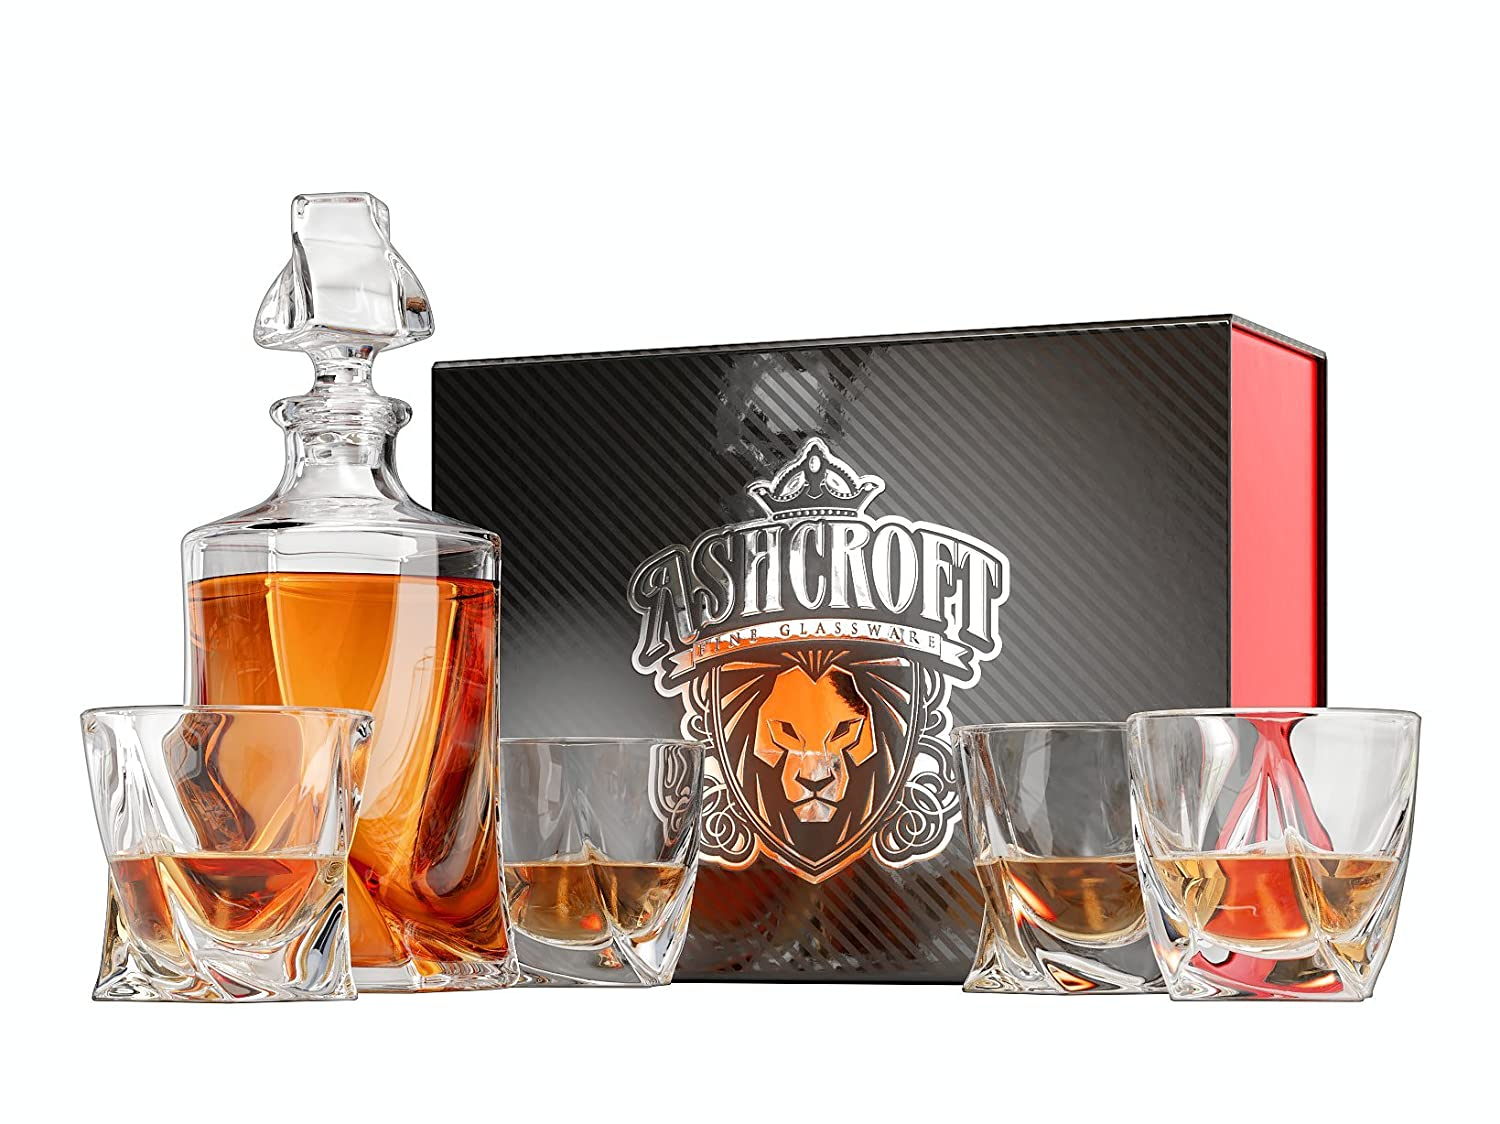 5-Piece Twist Whiskey Decanter Set of 4 Glasses and Scotch Decanter with Stopper - Unique Elegant Dishwasher Safe Glass Liquor Bourbon Decanter Ultra-Clarity Glassware by Ashcroft